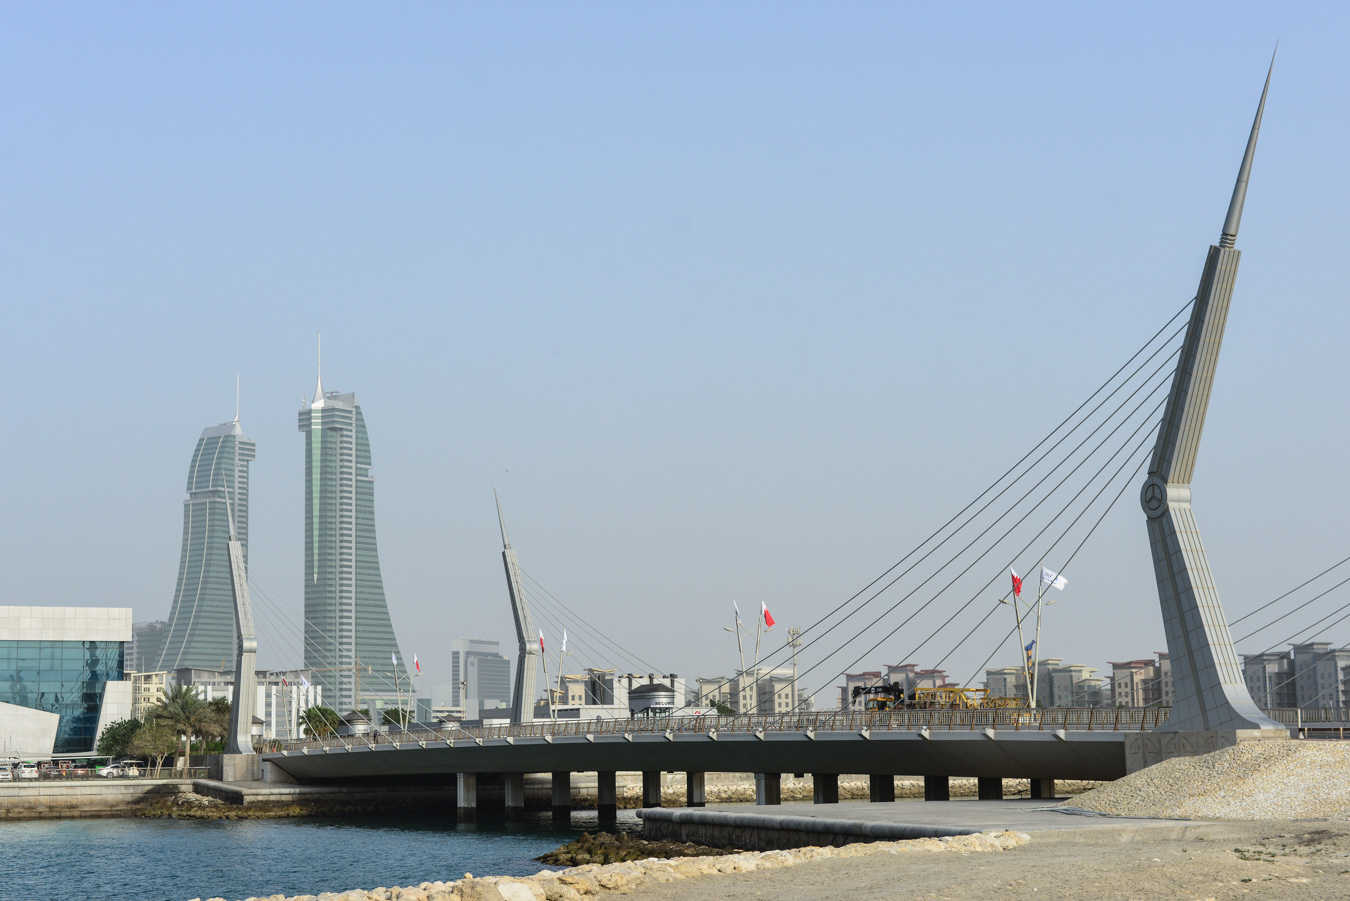 A bridge in Bahrain